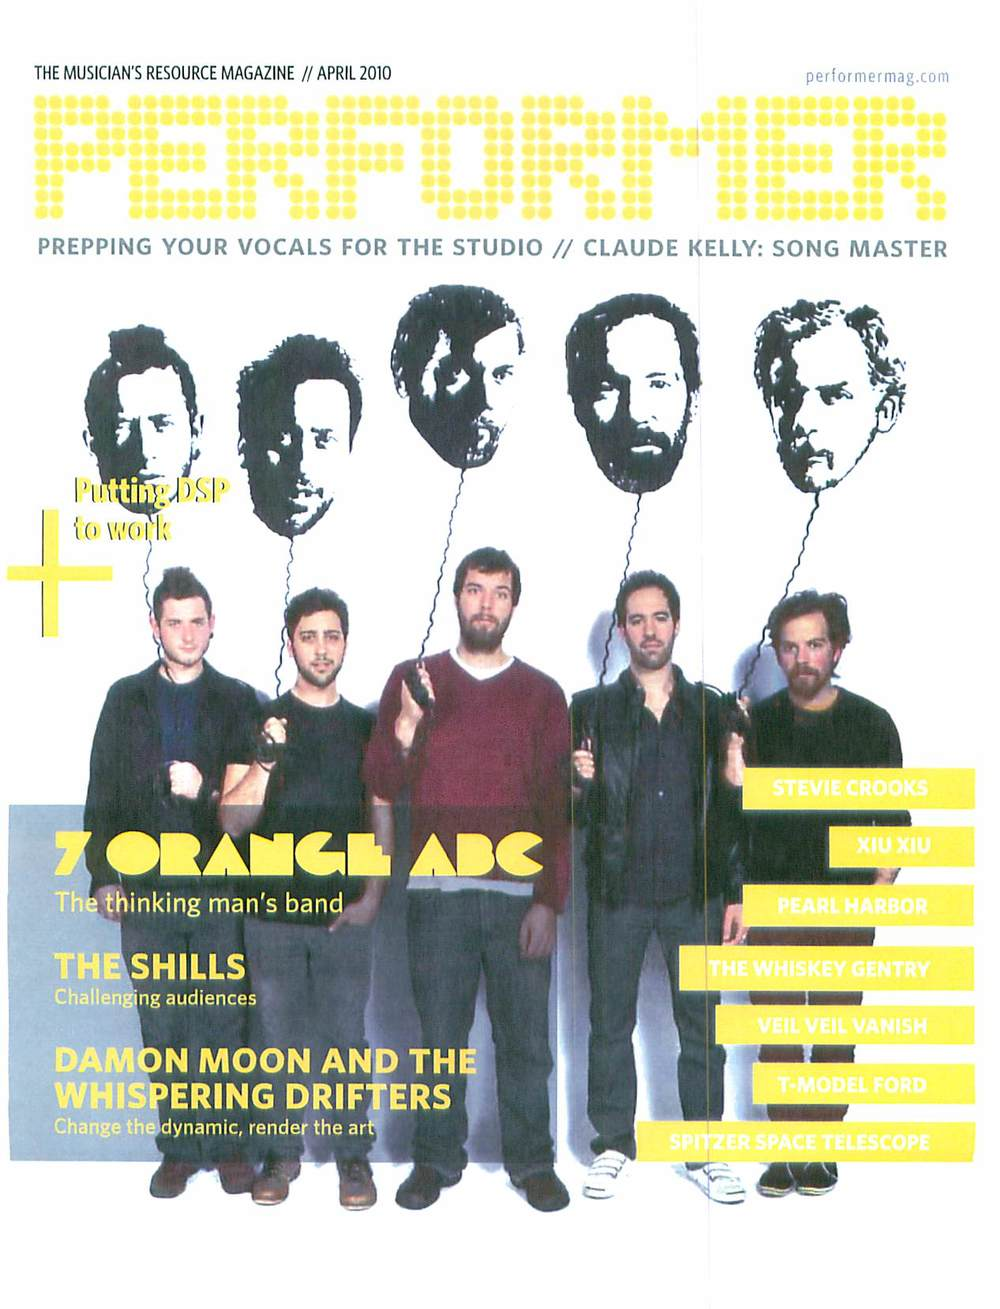 performer-mag-april-cover.jpg